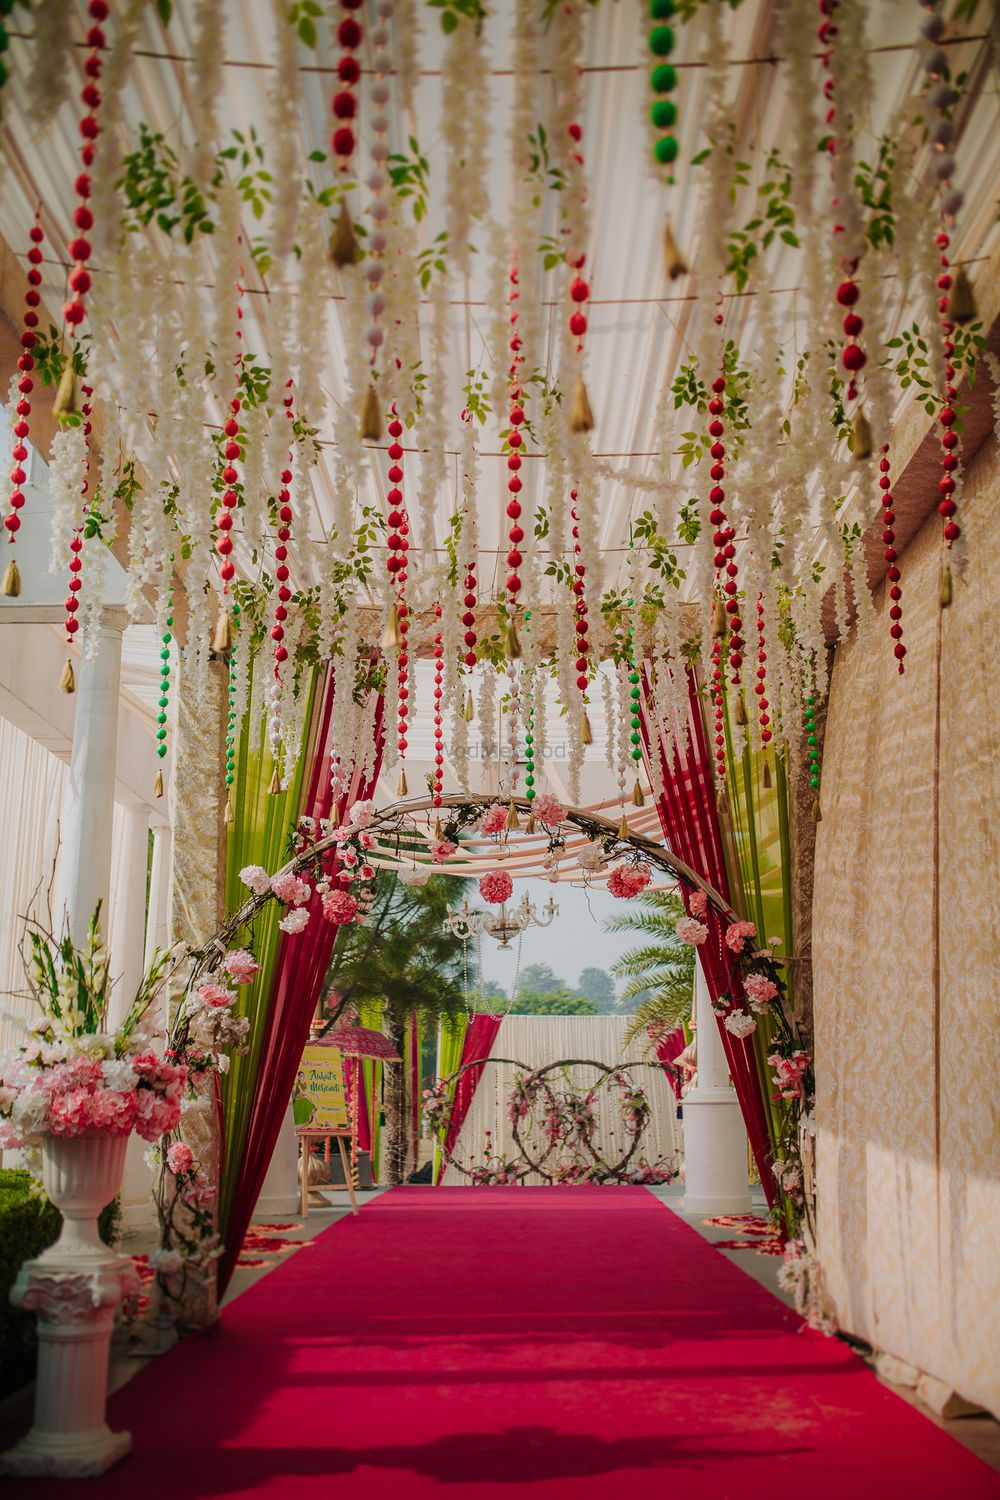 Photo of Decor for entranceway with hanging floral strings